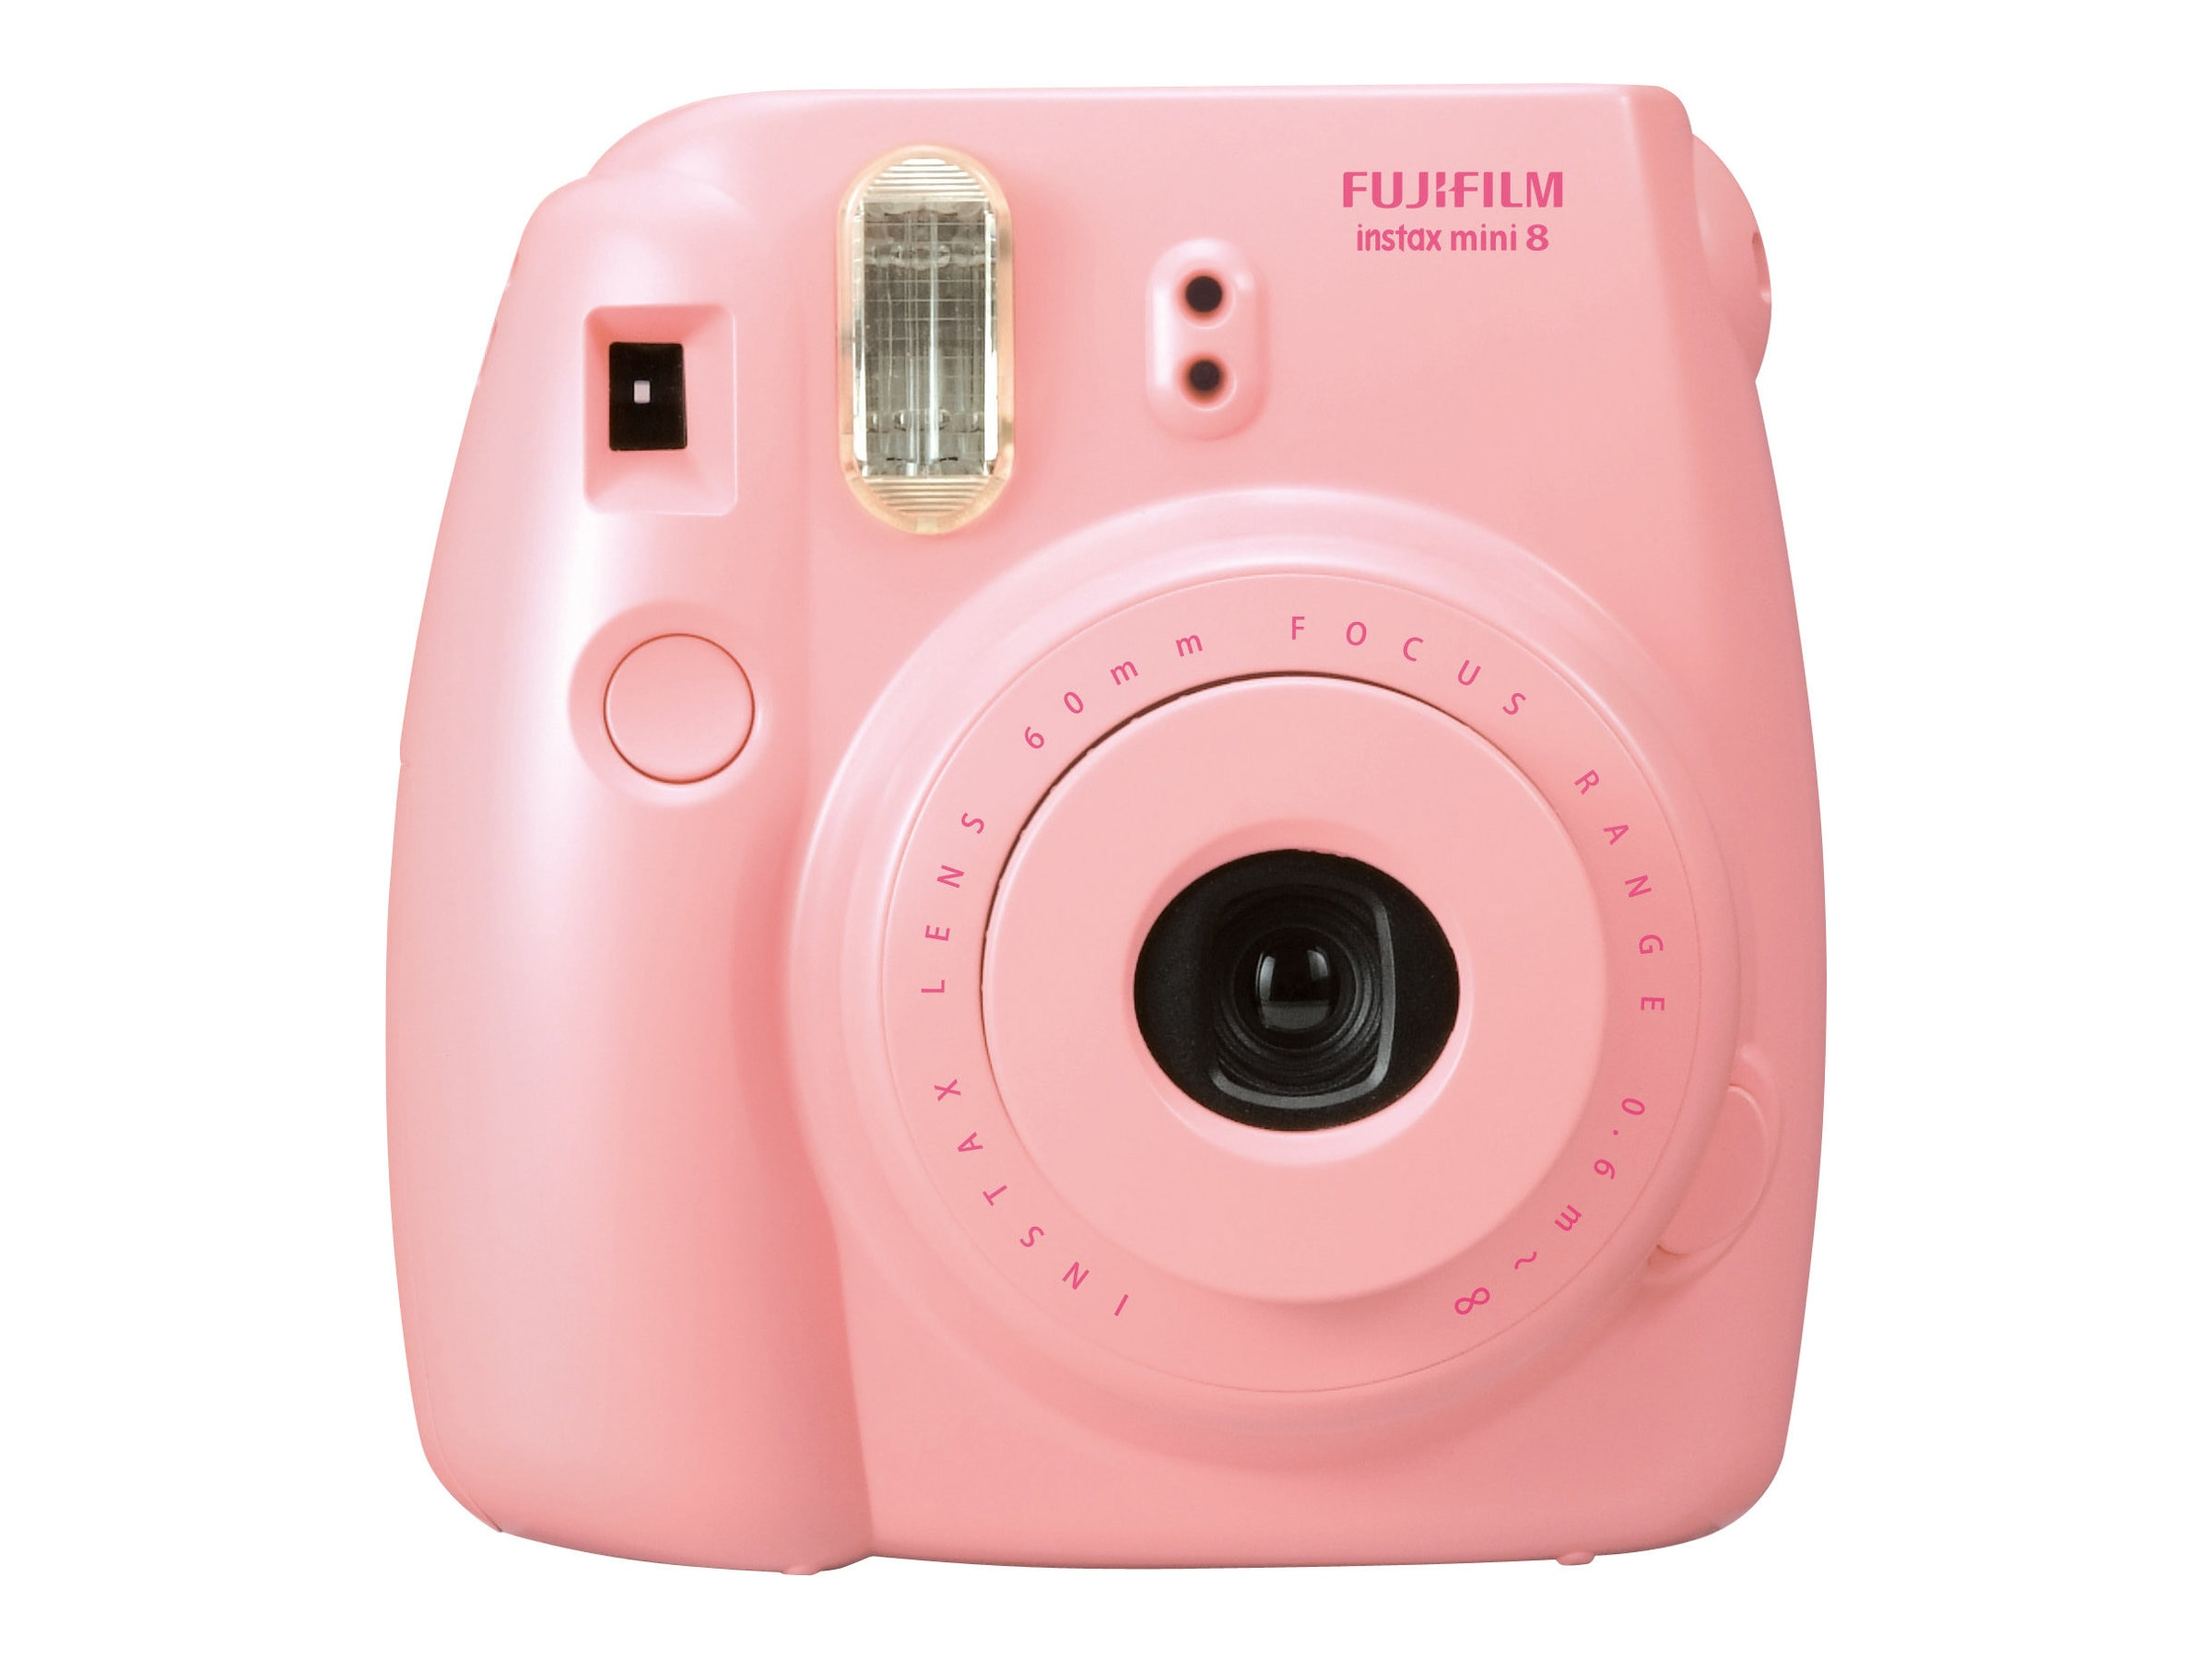 Fujifilm Instax Mini 8 Camera, Pink